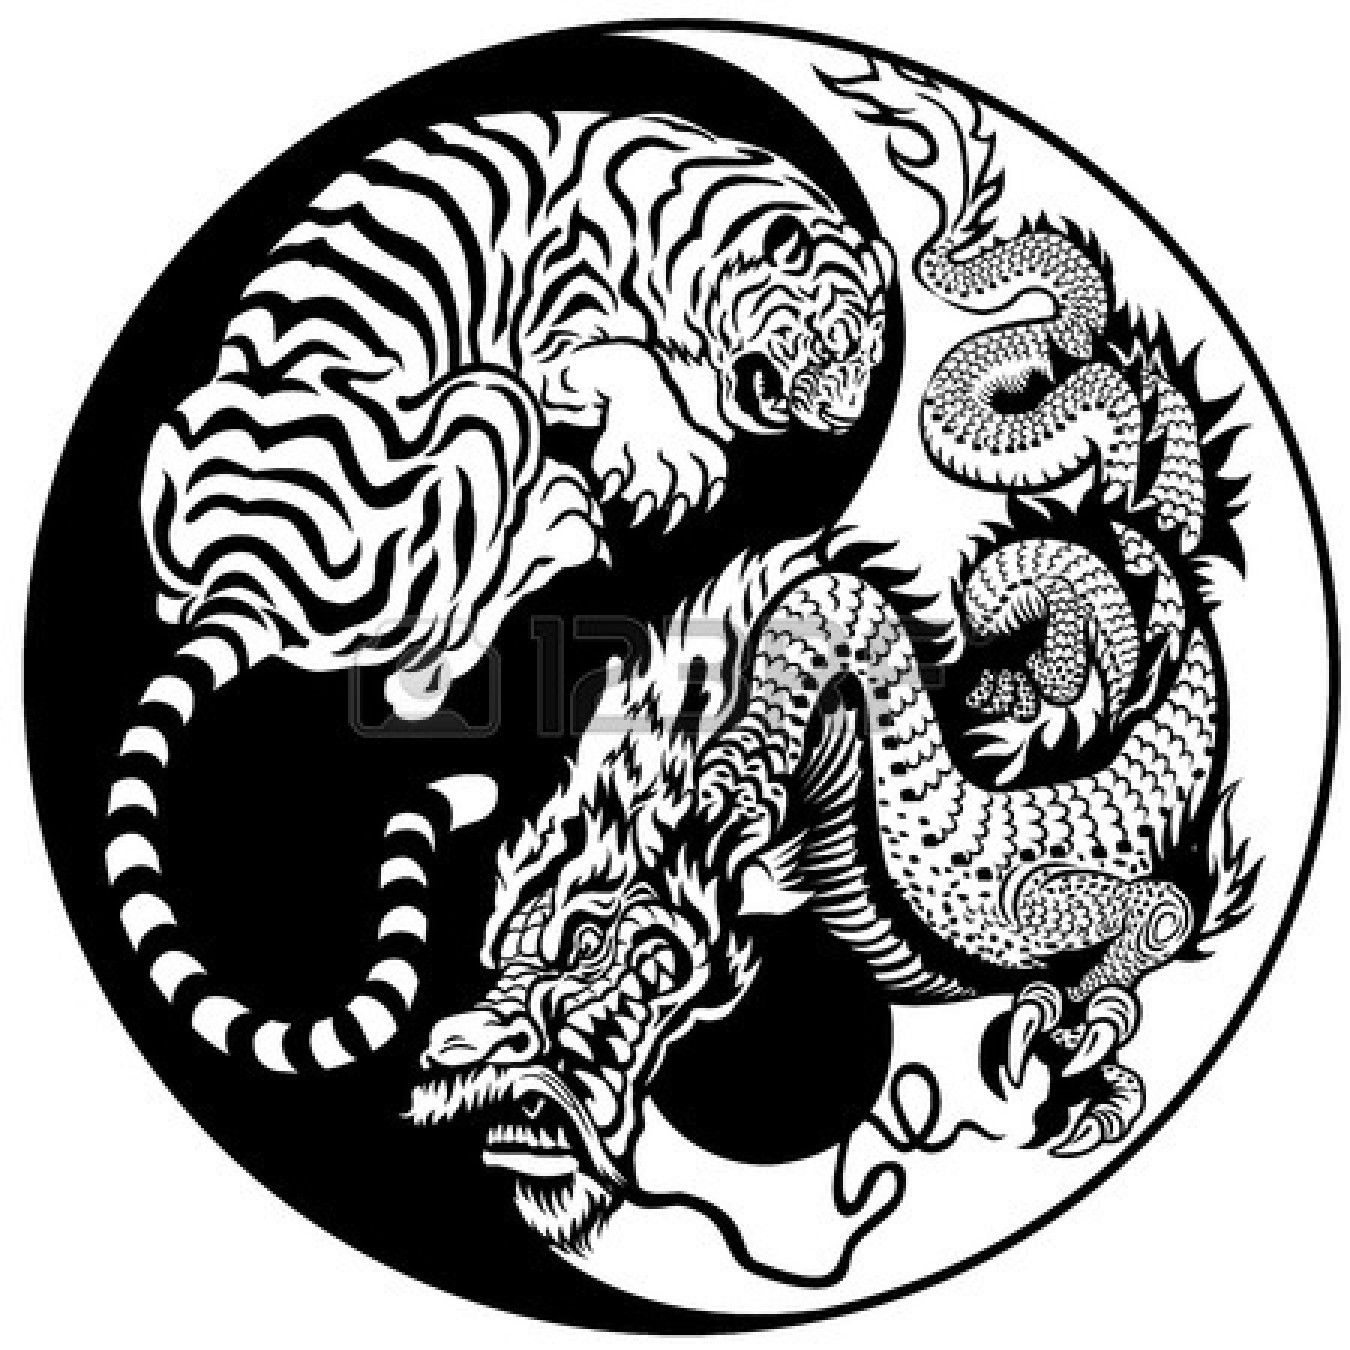 the fusion of a tiger and a dragon kempo karate martial arts rh pinterest com Yin Yang Symbol Meaning Colorful Yin Yang